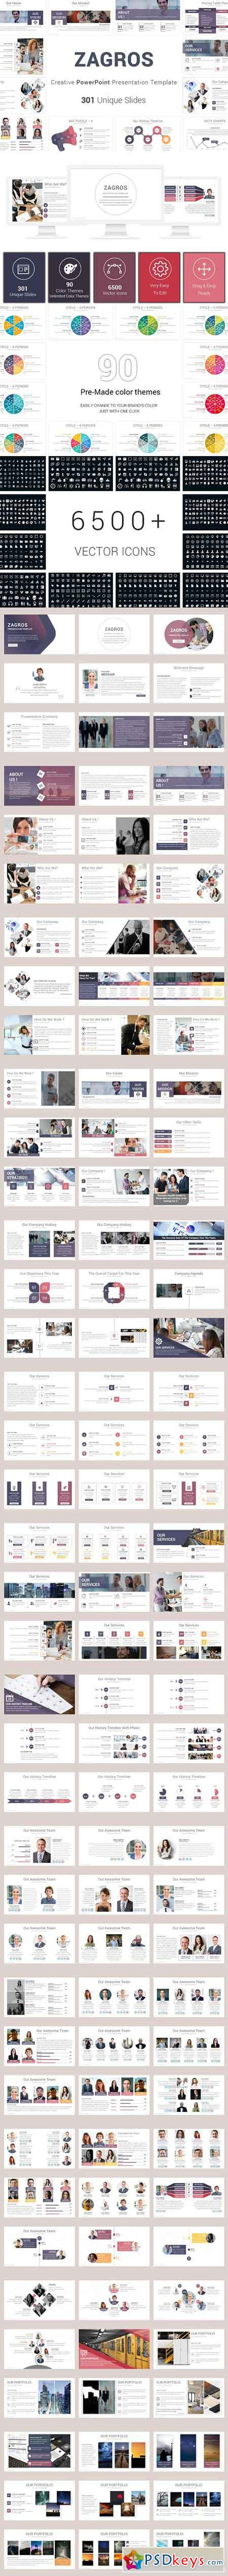 Zagros Business PowerPoint Template 2708721